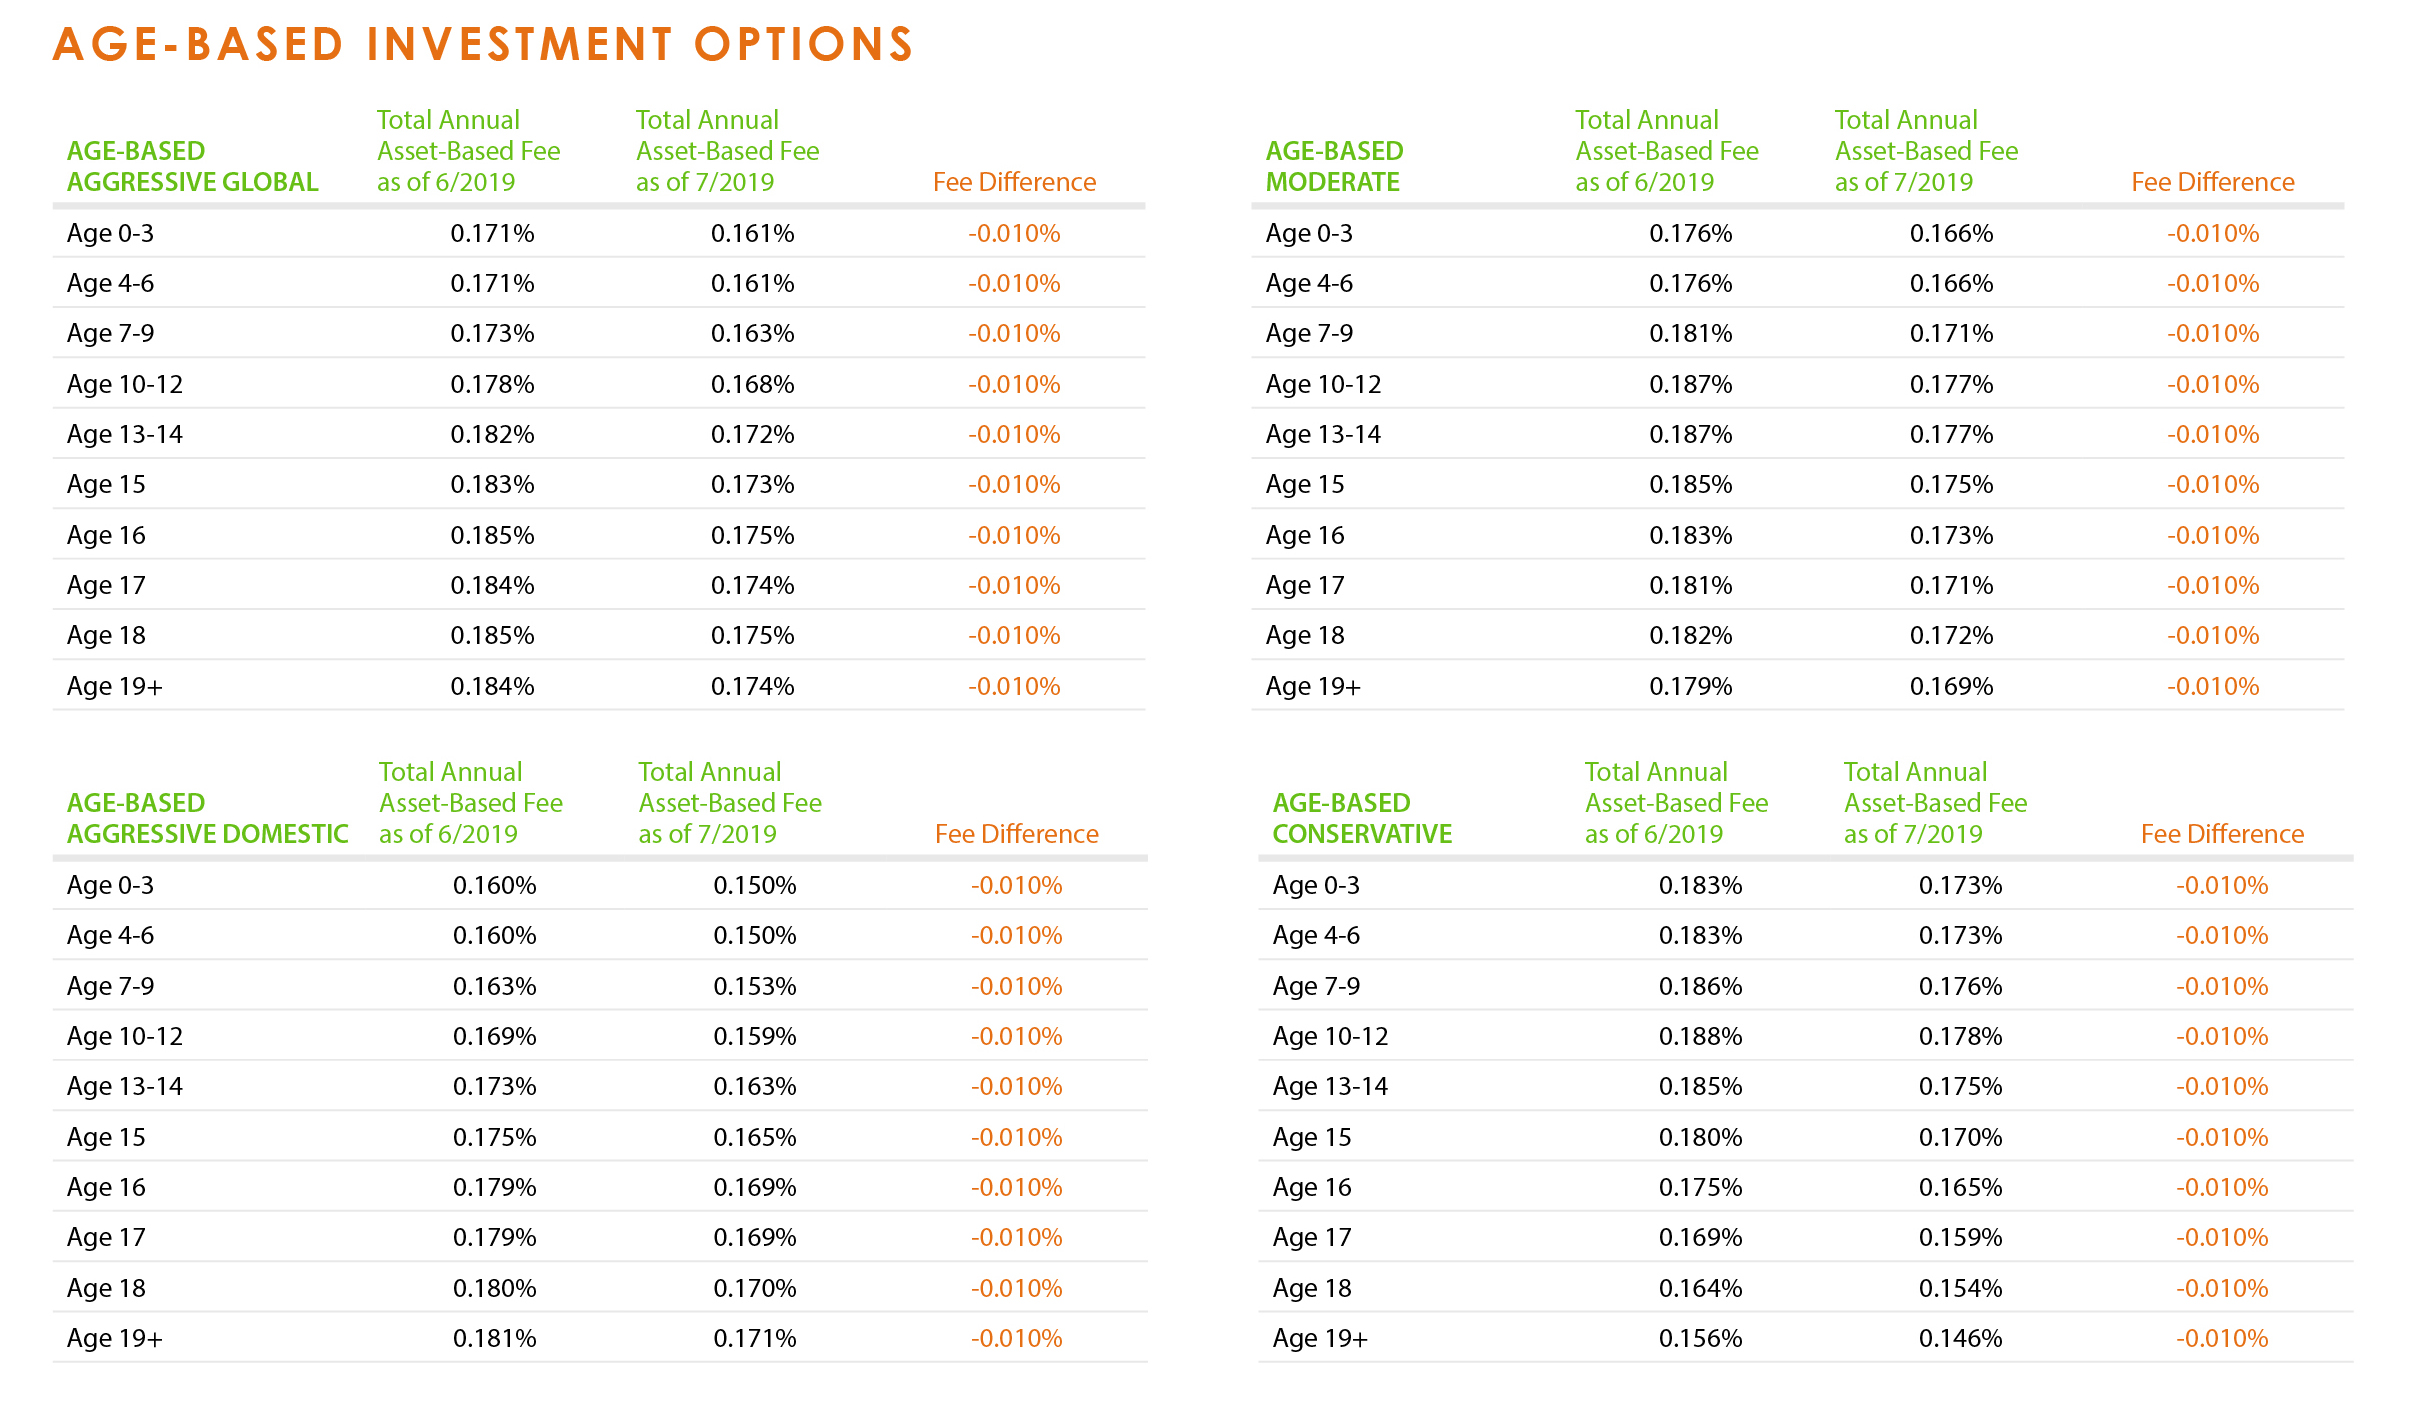 Cbus investment options fees